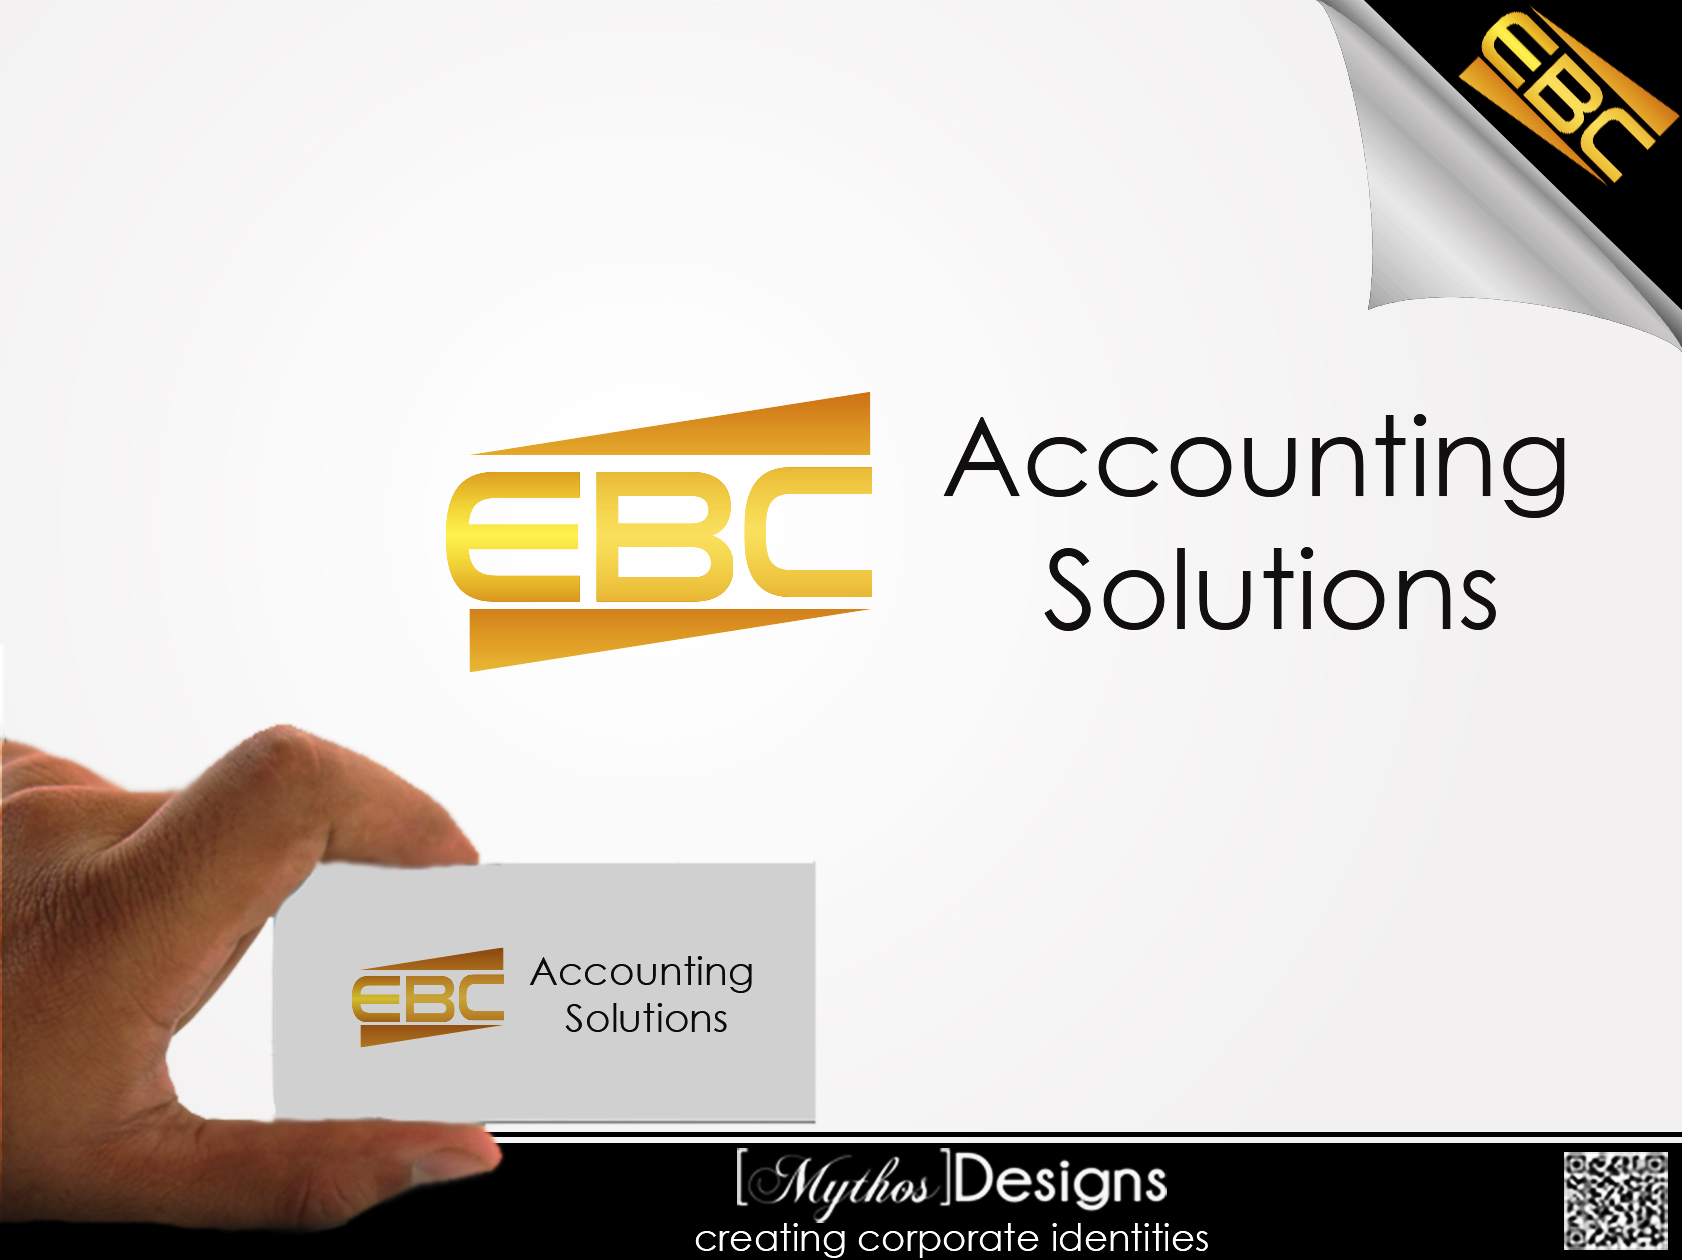 Logo Design by Mythos Designs - Entry No. 211 in the Logo Design Contest New Logo Design for EBC Accounting Solutions.